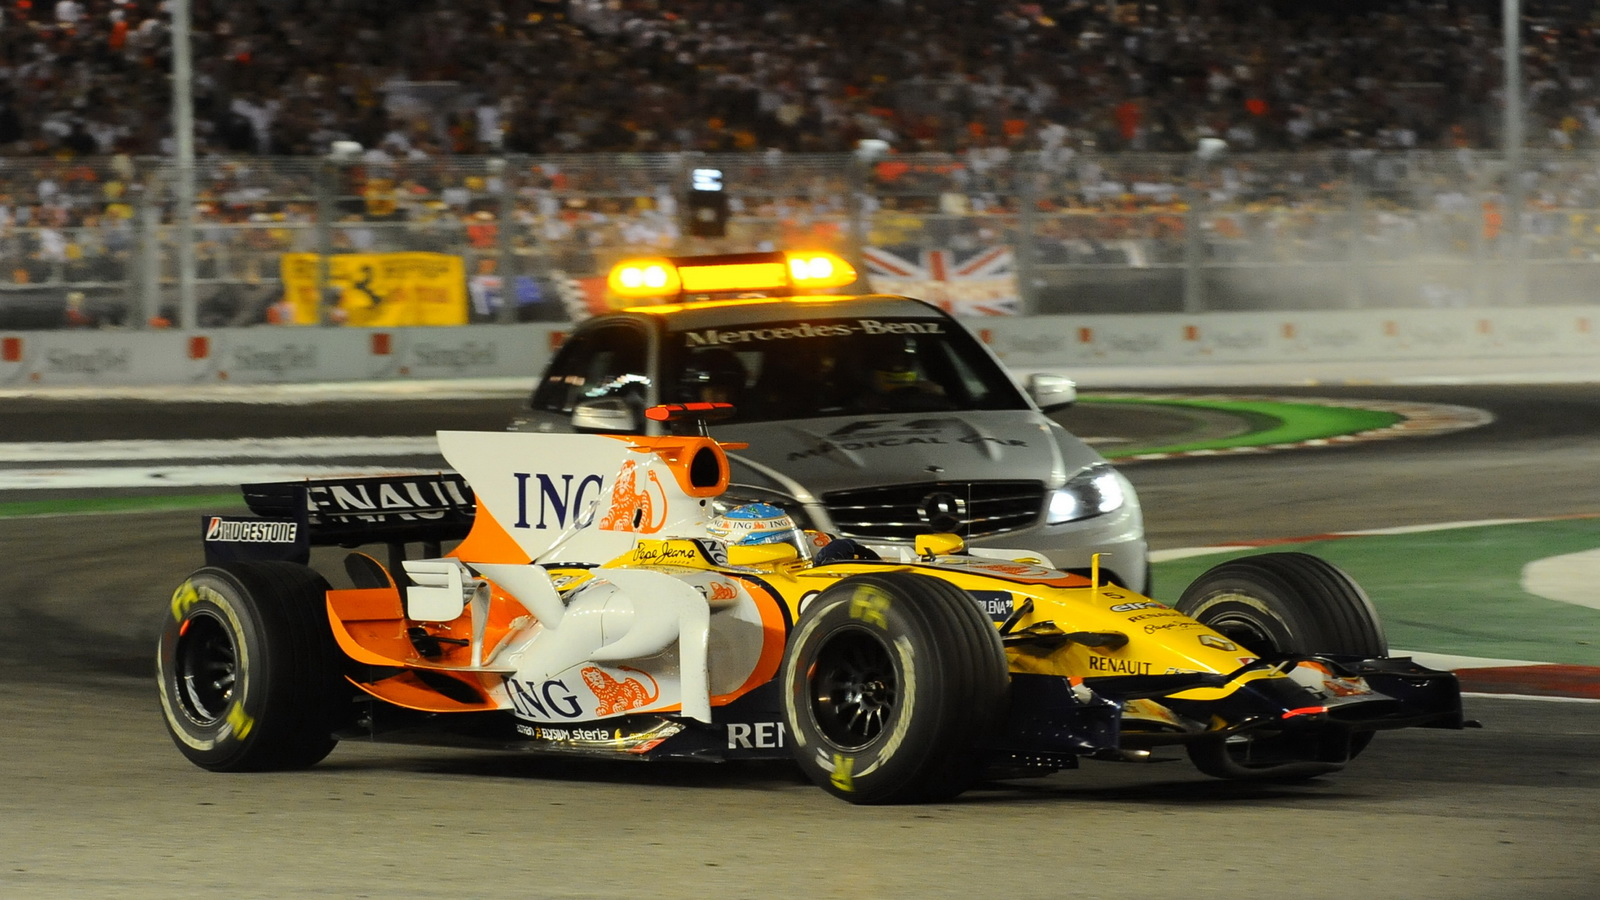 Alonso_Renault_Singapore GP 2008_SC